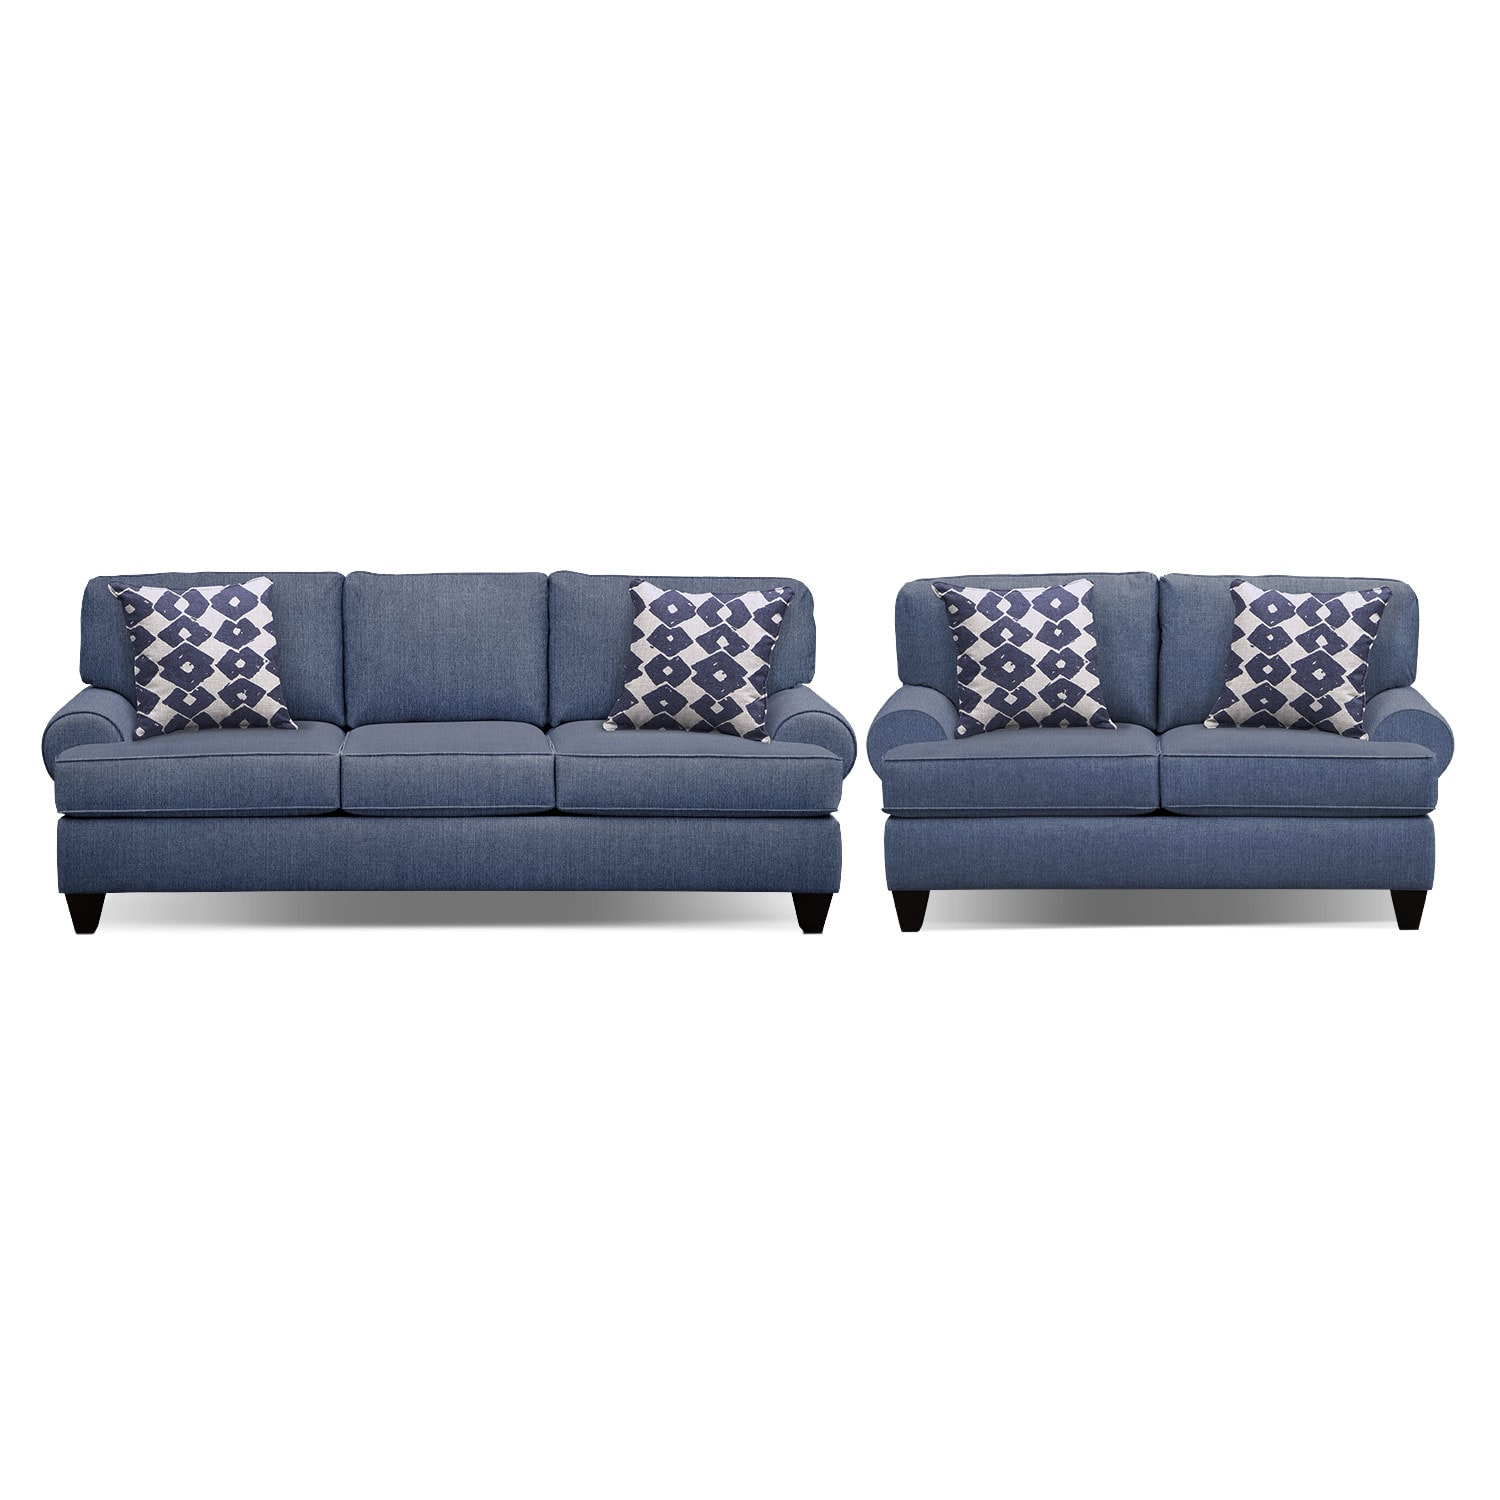 "Living Room Furniture - Bailey Blue 91"" Sofa and 67"" Sofa Set"